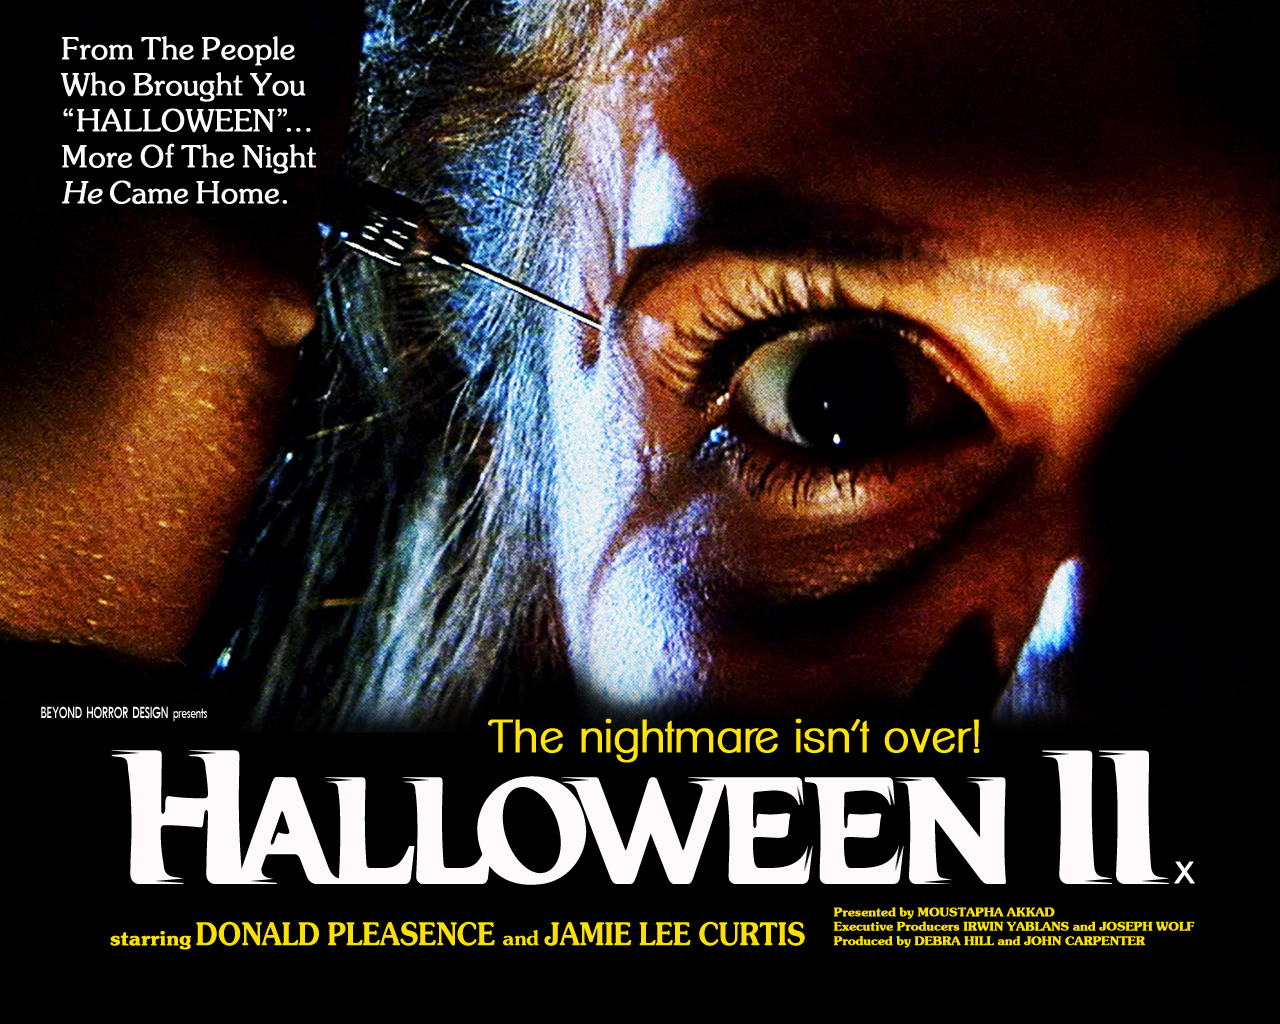 Staystillreviews: Day - 27 Halloween II (1981)